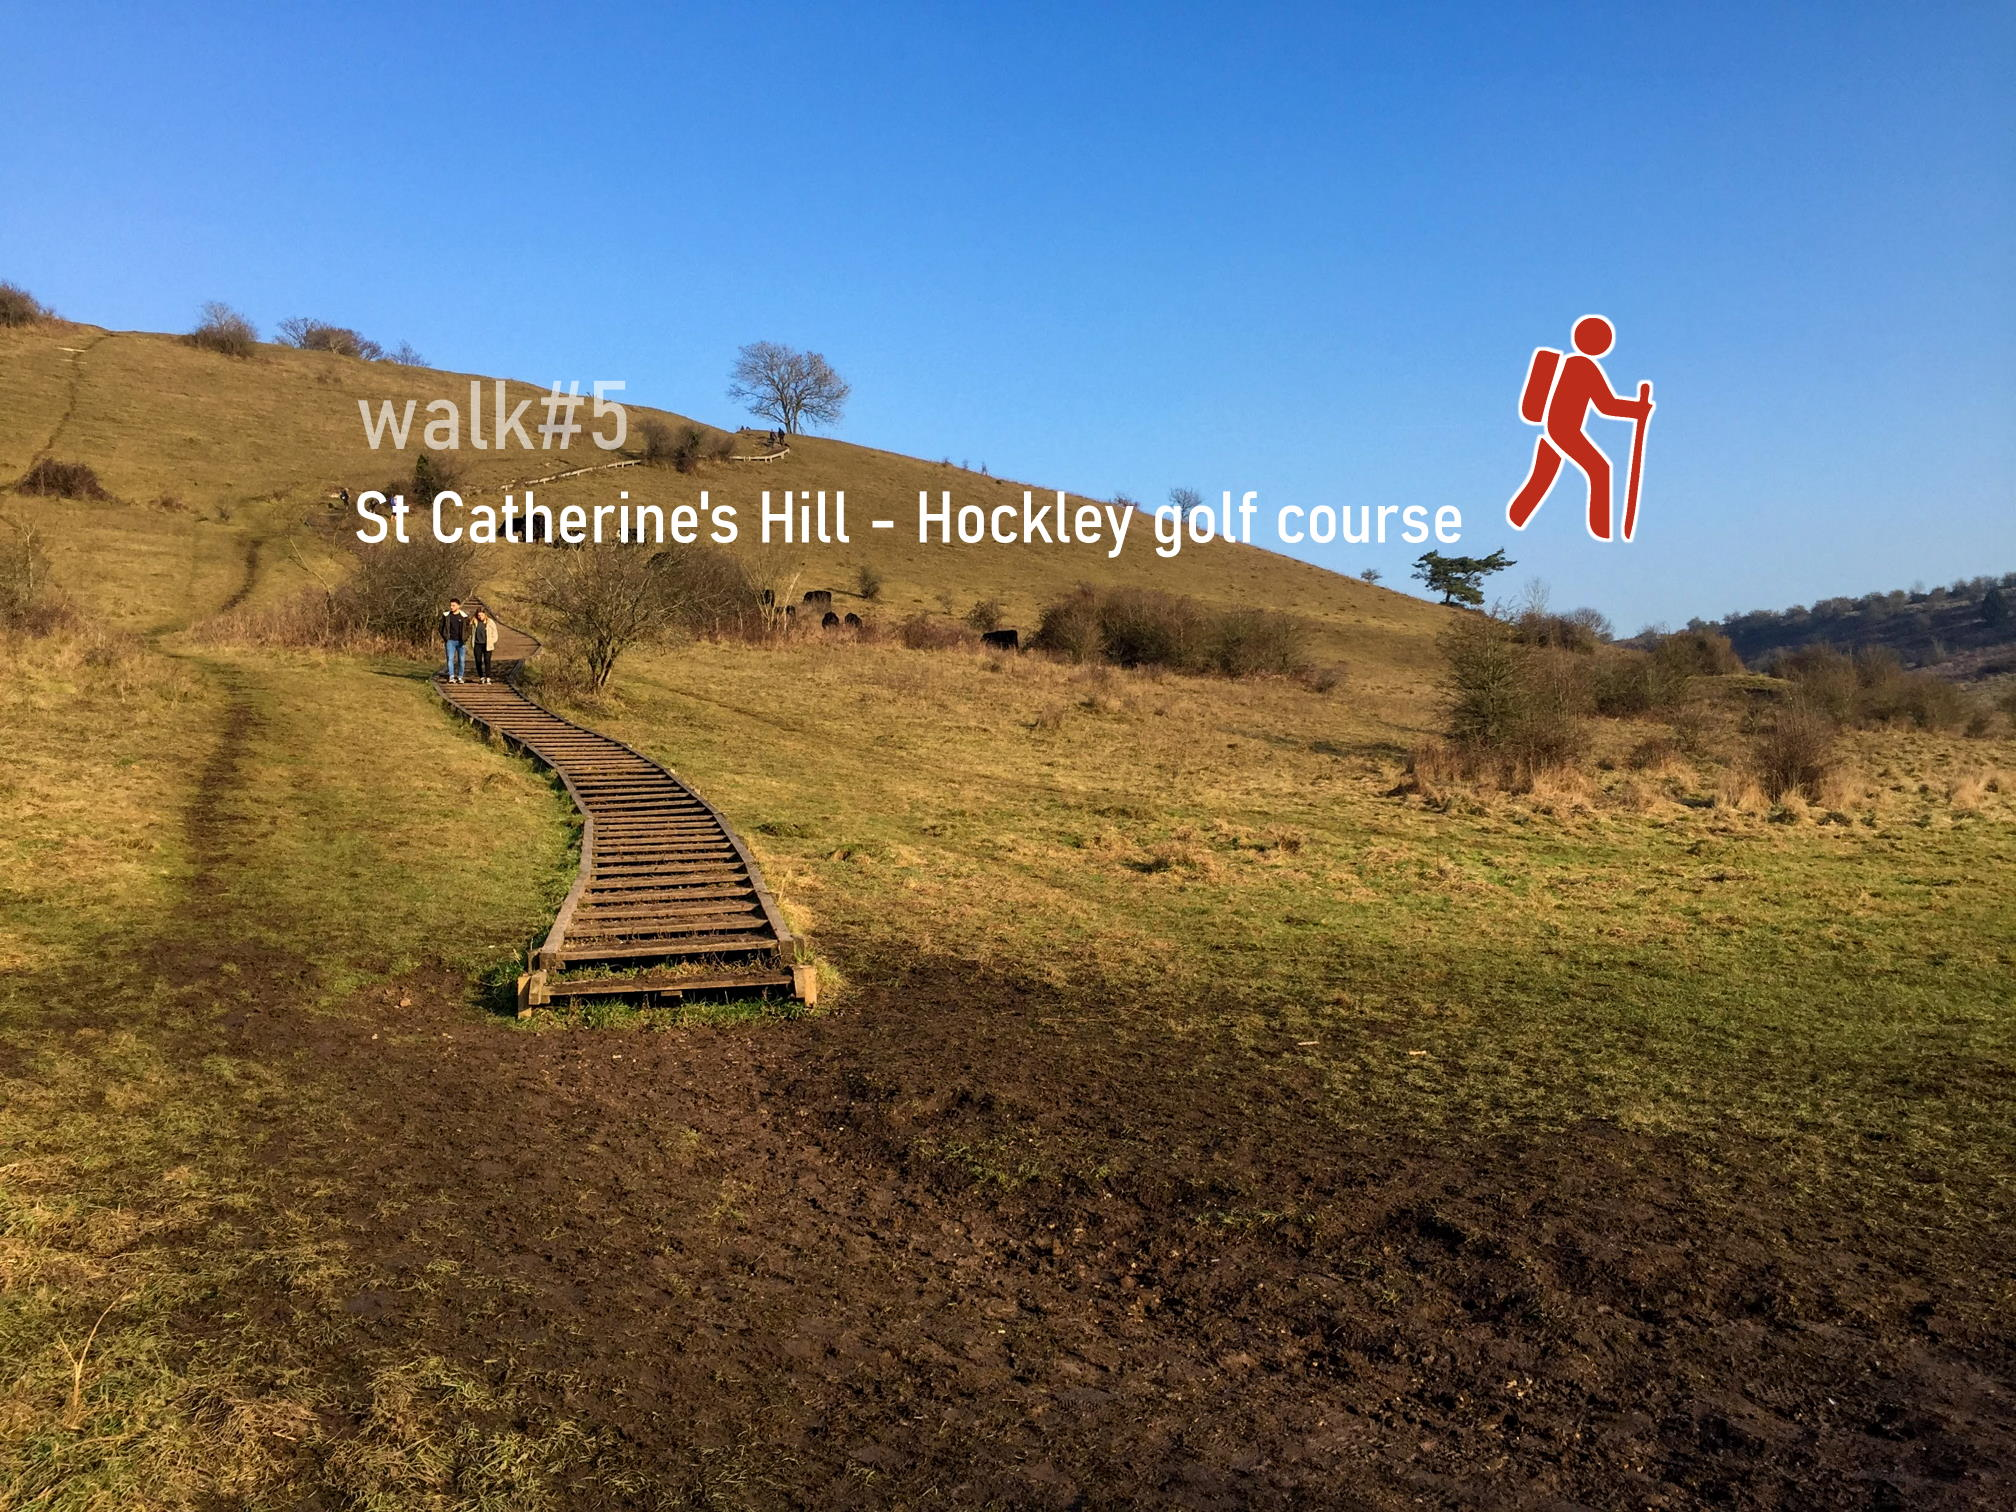 walk5 - St Catherine's Hill - Hockley golf course